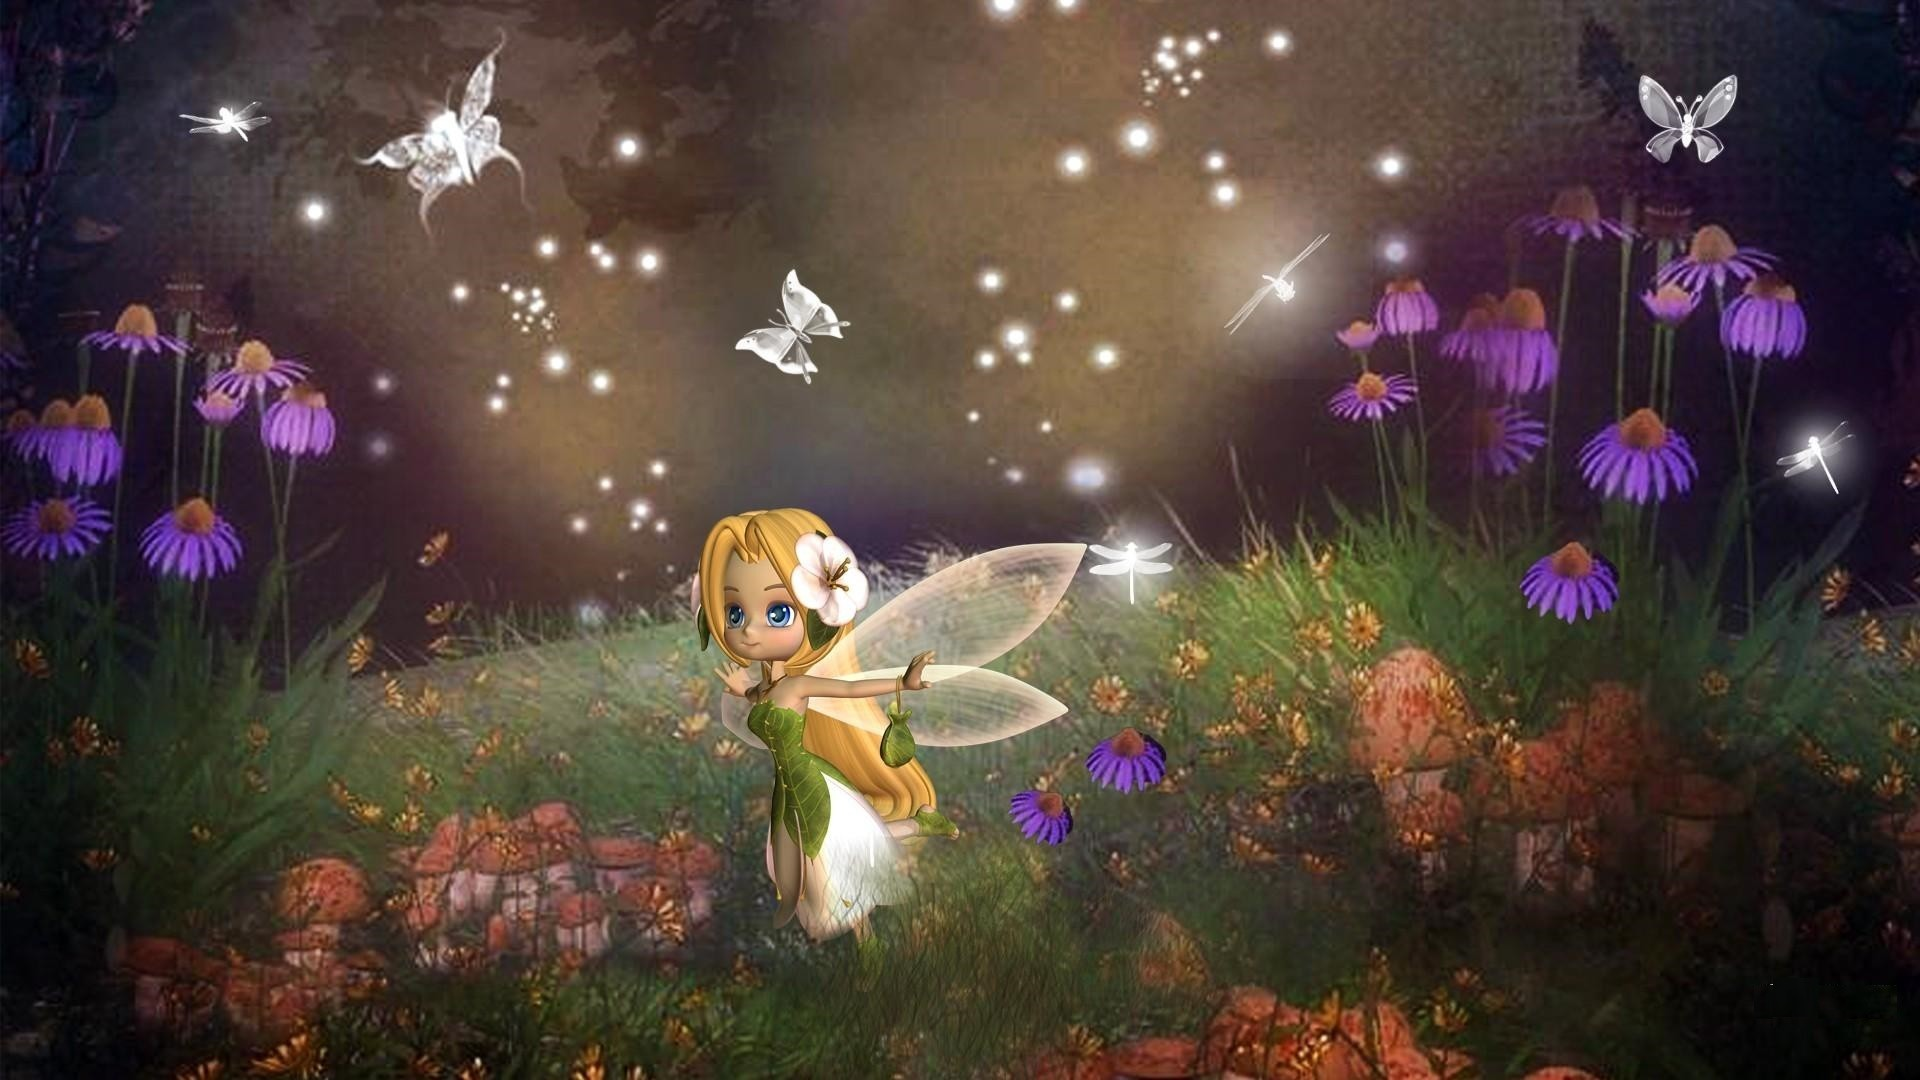 1920x1080 ... Pictures Wallpapers Download Lovely Fairy Wallpapers Hd Pixelstalk Net  ...